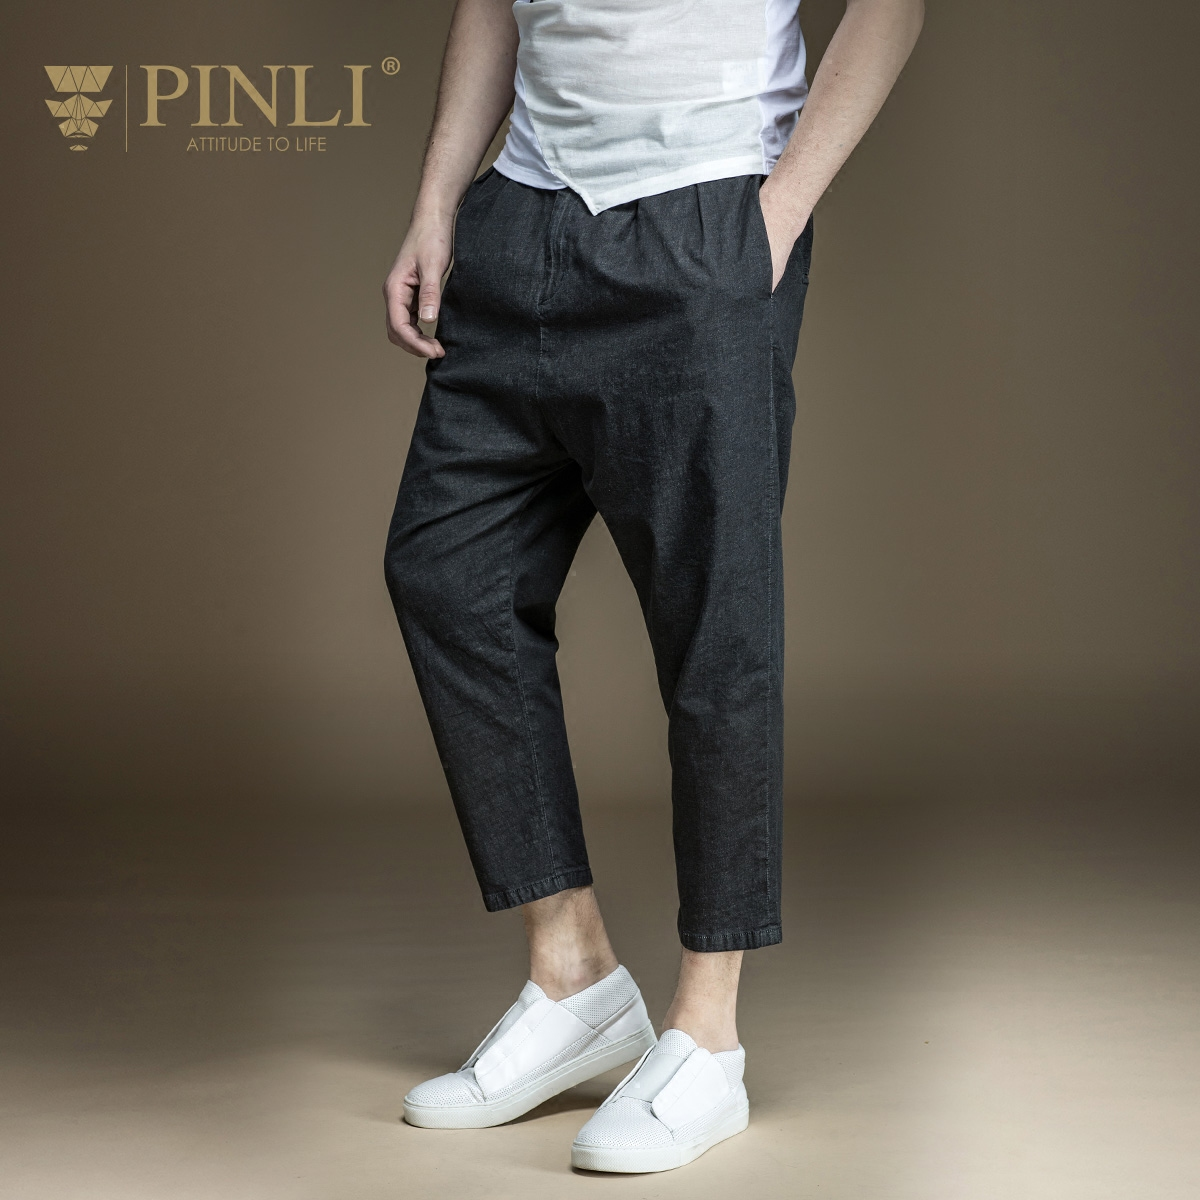 Pinli Time limited Acetate Zipper Fly Knee Length Product 2017 New Summer Men s Crotch Pants